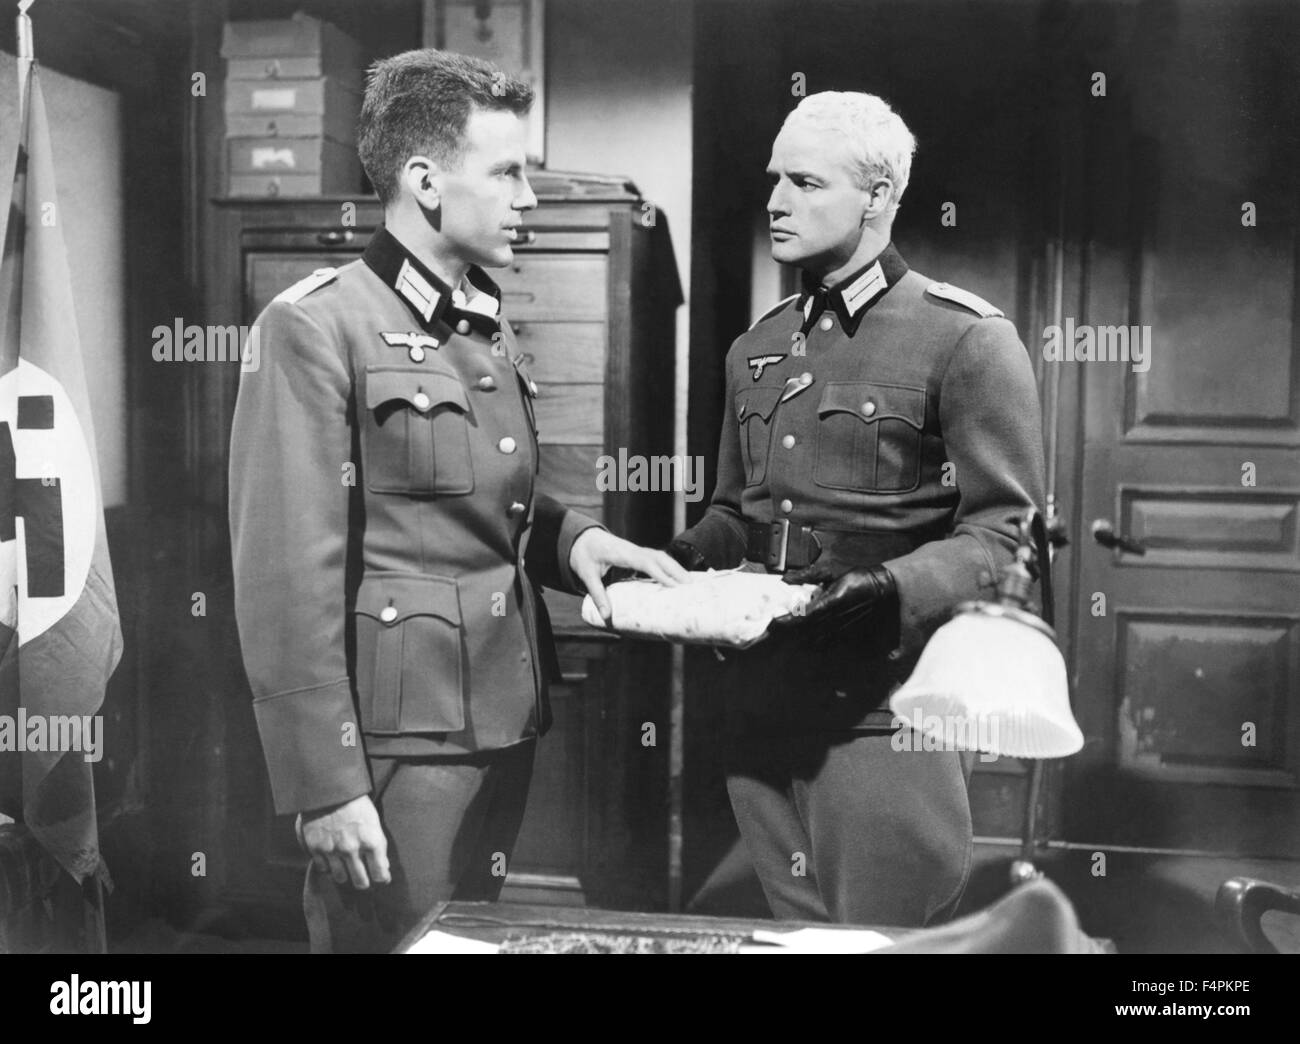 Jacques schell photographe synthesis of all pictures from www - Maximilian Schell And Marlon Brando The Young Lions 1958 Directed By Edward Dmytryk